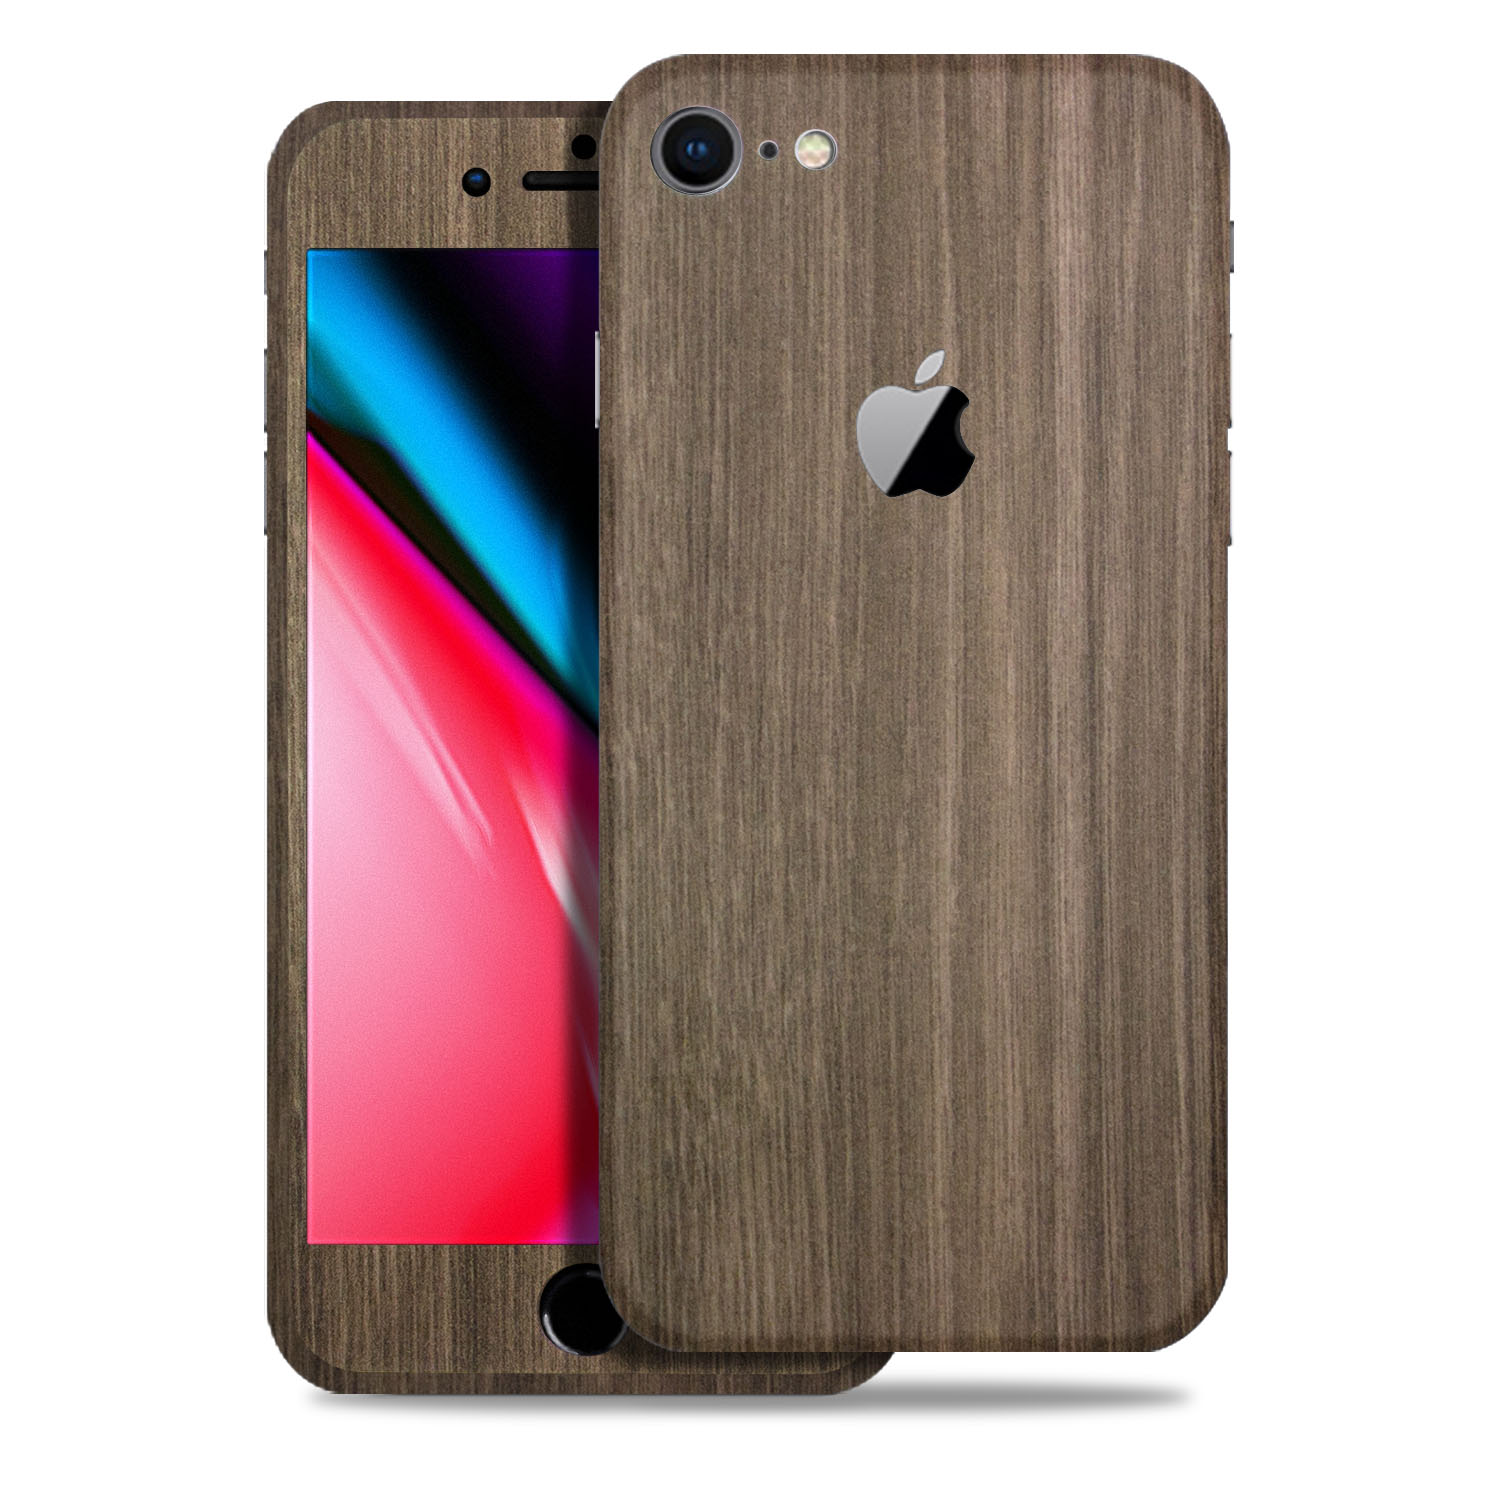 Apple iPhone 8 Aged Wood Texture Protective Vinyl Skin Decal Skins & Wraps (1PK Back / 1PK Front)